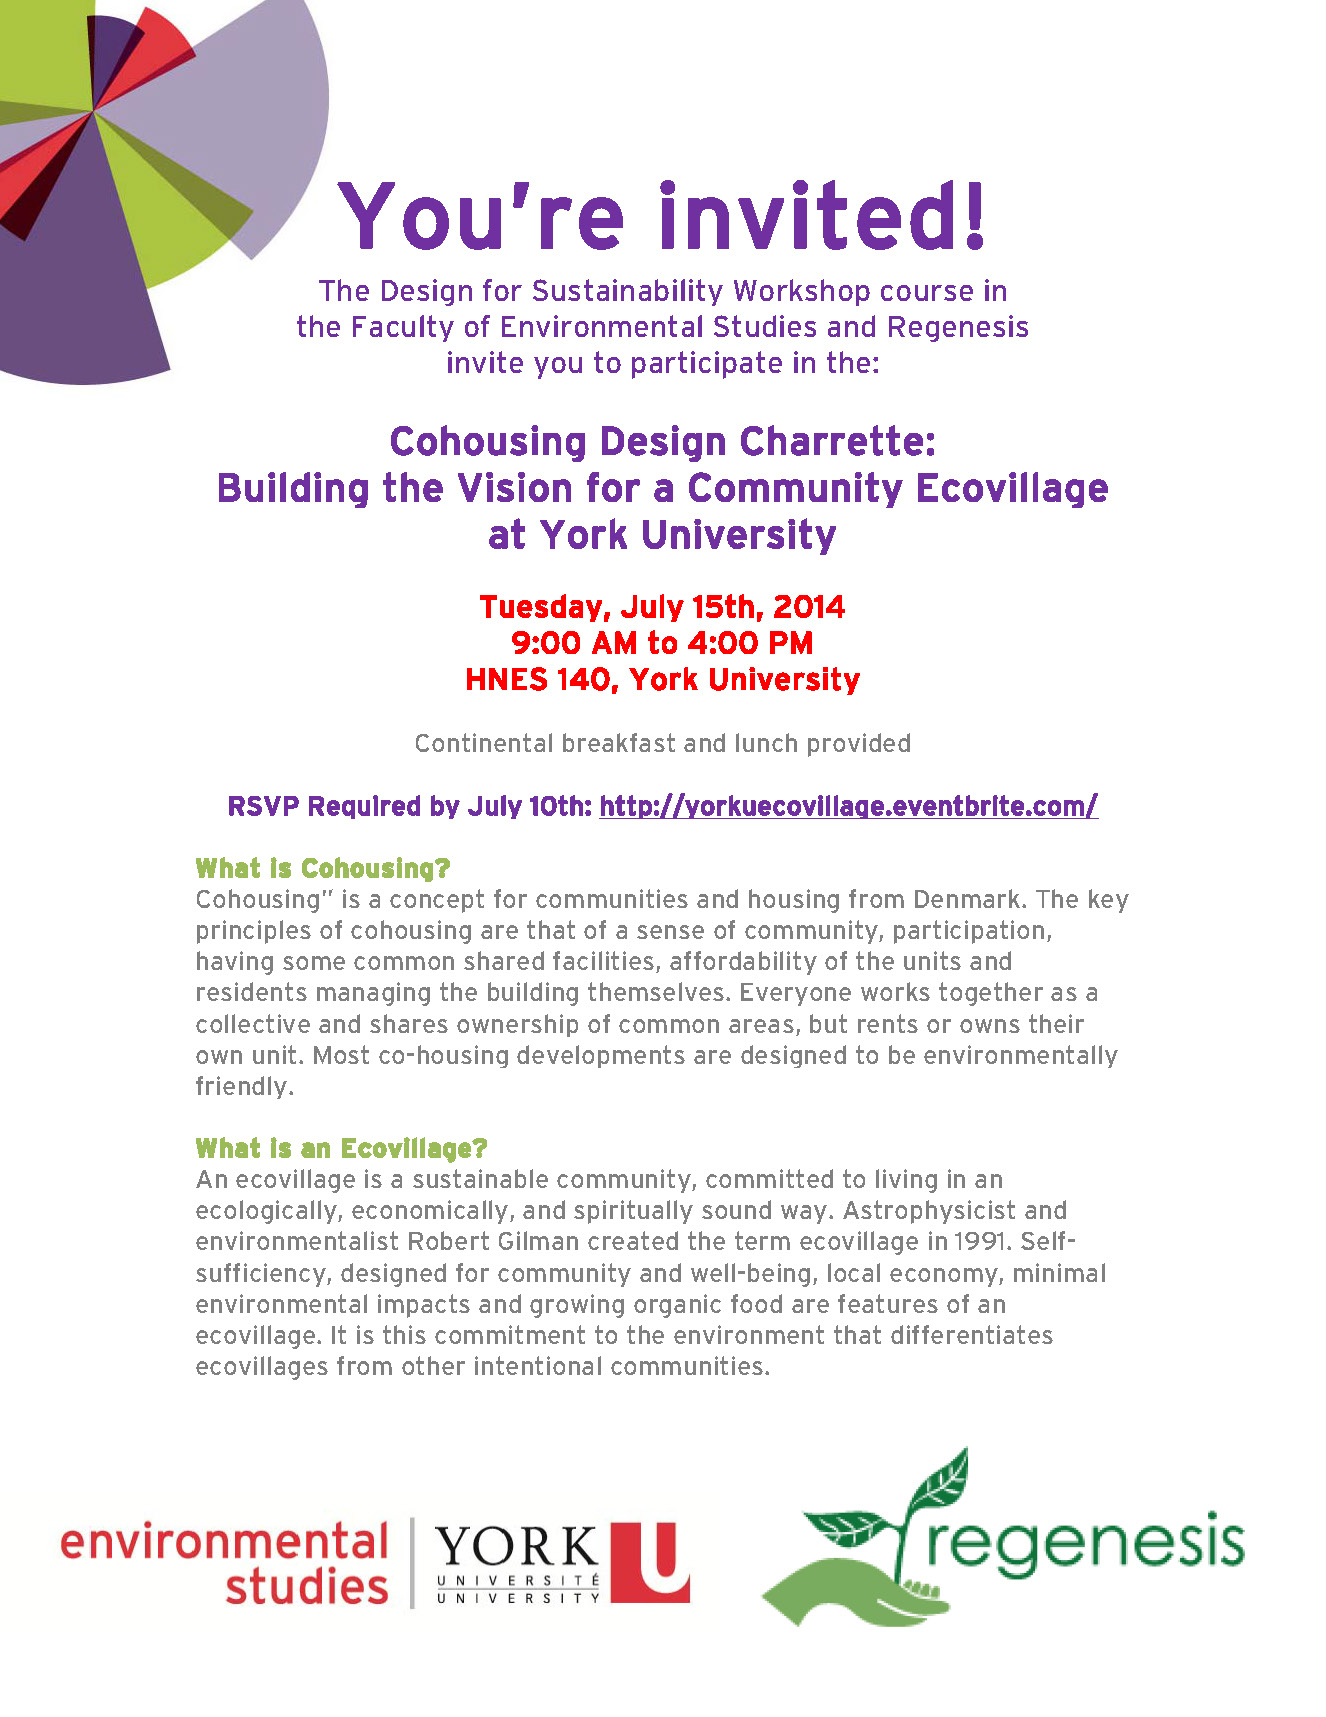 Cohousing Design Charrette: Building the Vision for a Community Ecovillage at York University @ York University | Fargo | North Dakota | United States